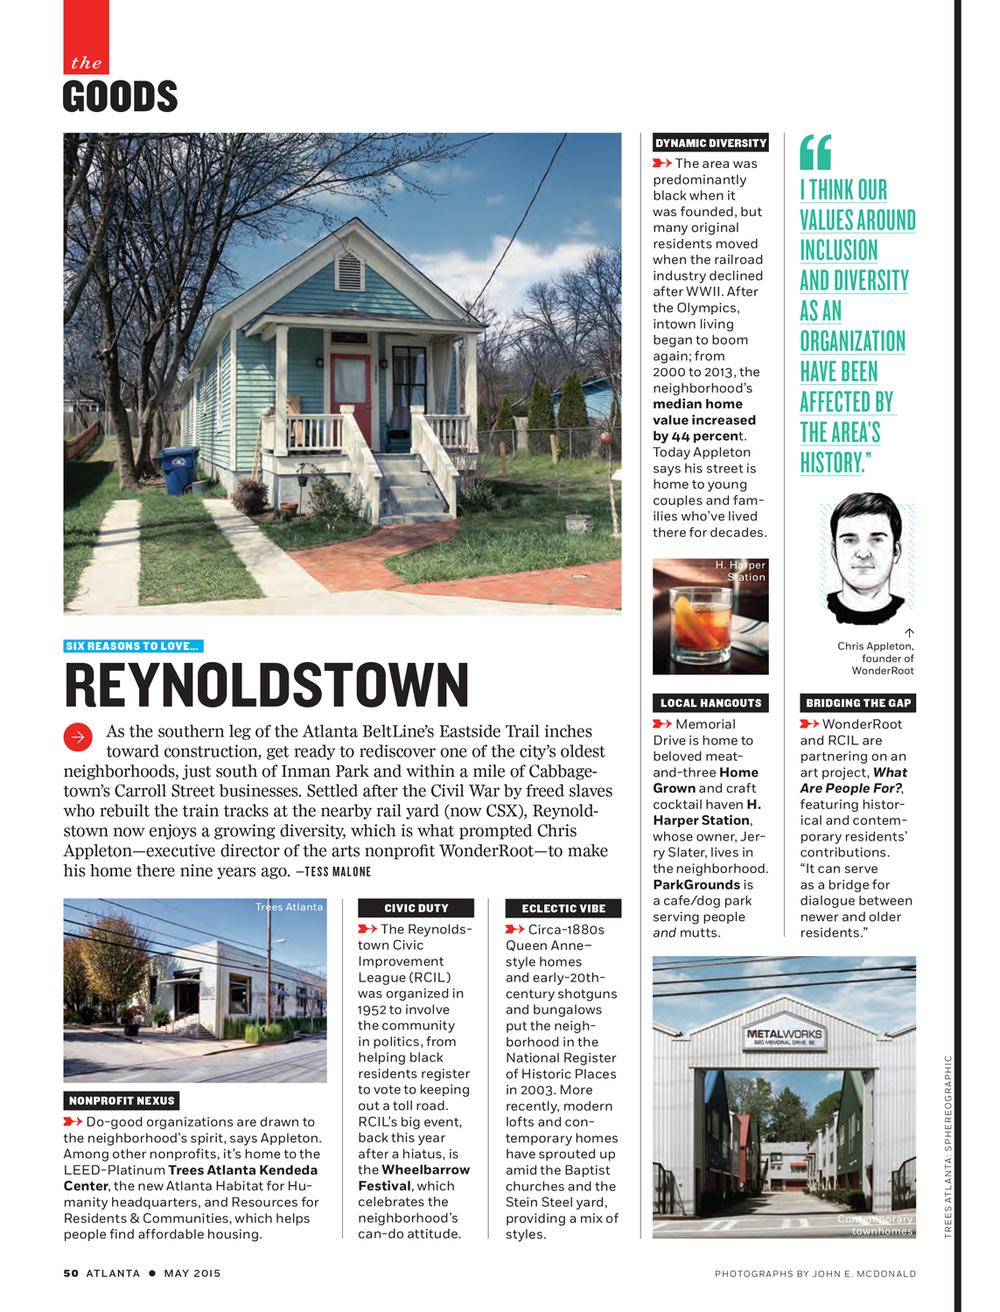 Atlanta Magazine - Reynoldstown